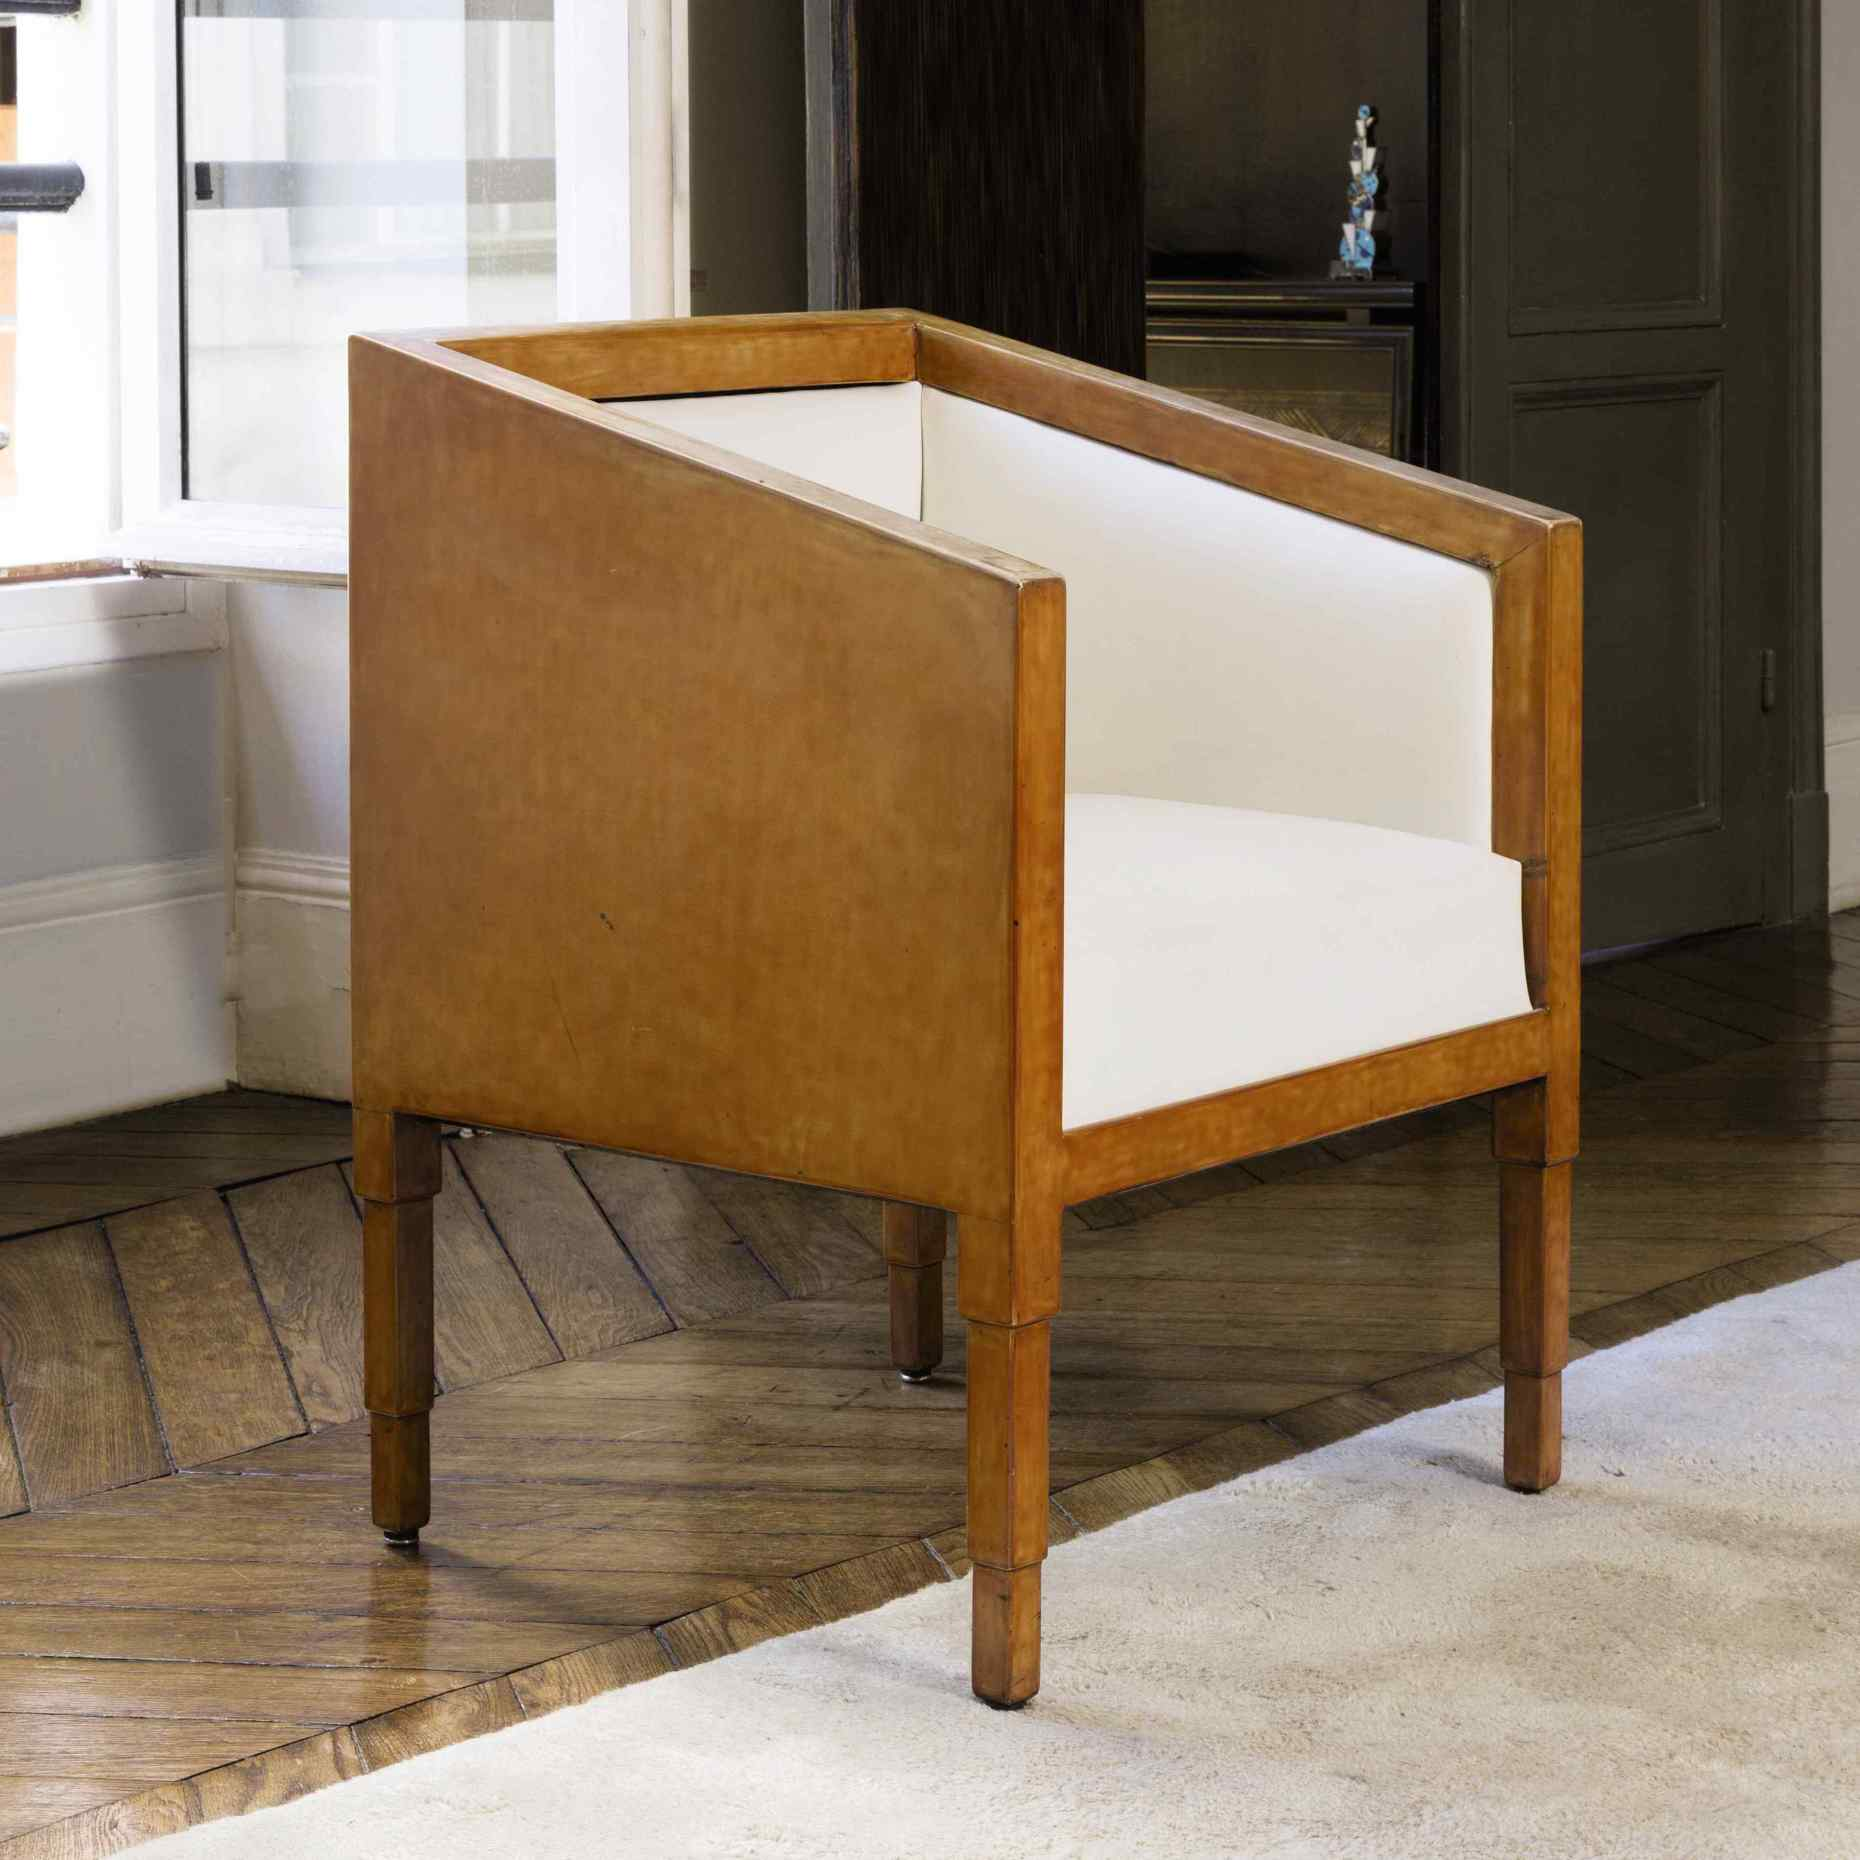 An exceptional cache of art deco furniture up for auction in Paris